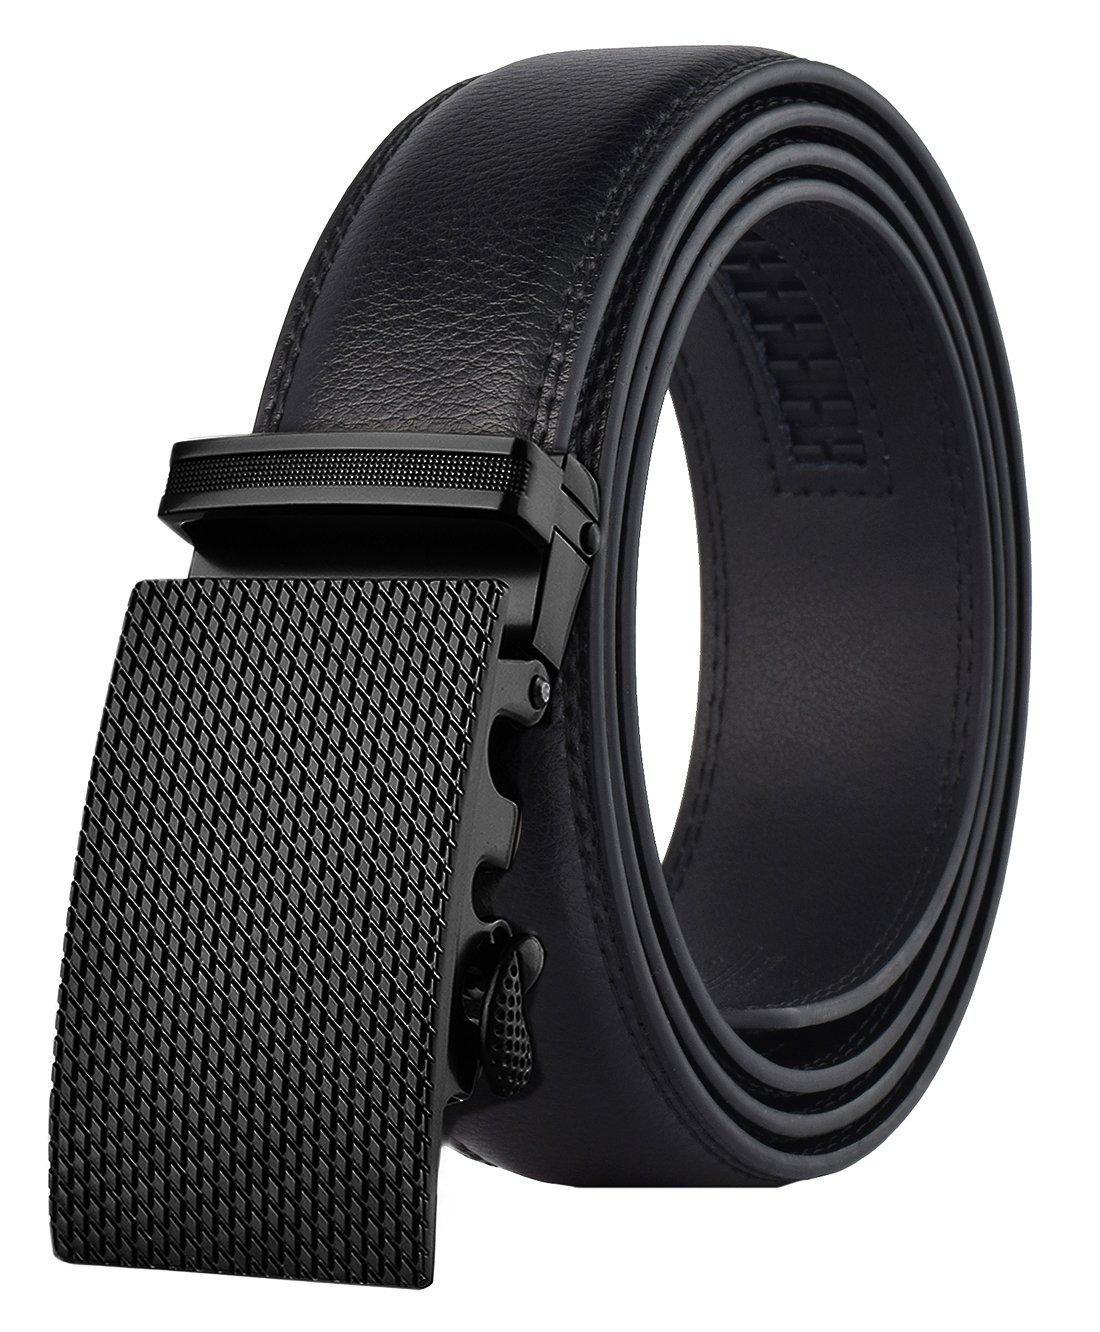 QISHI YUHUA Mens Leather Ratche Dress Belts for Men,801